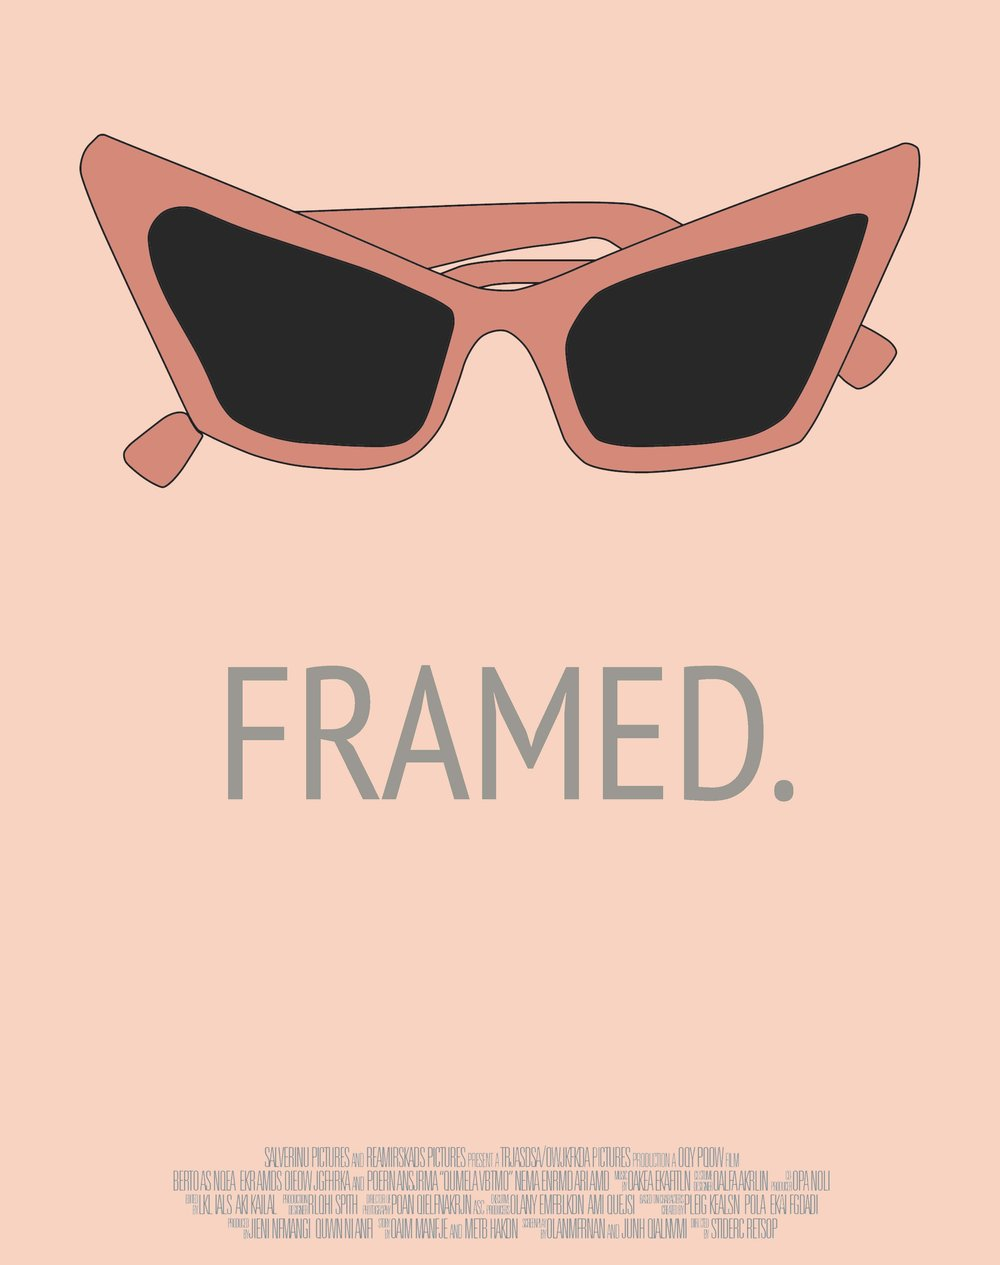 FRAMED. - test it out!